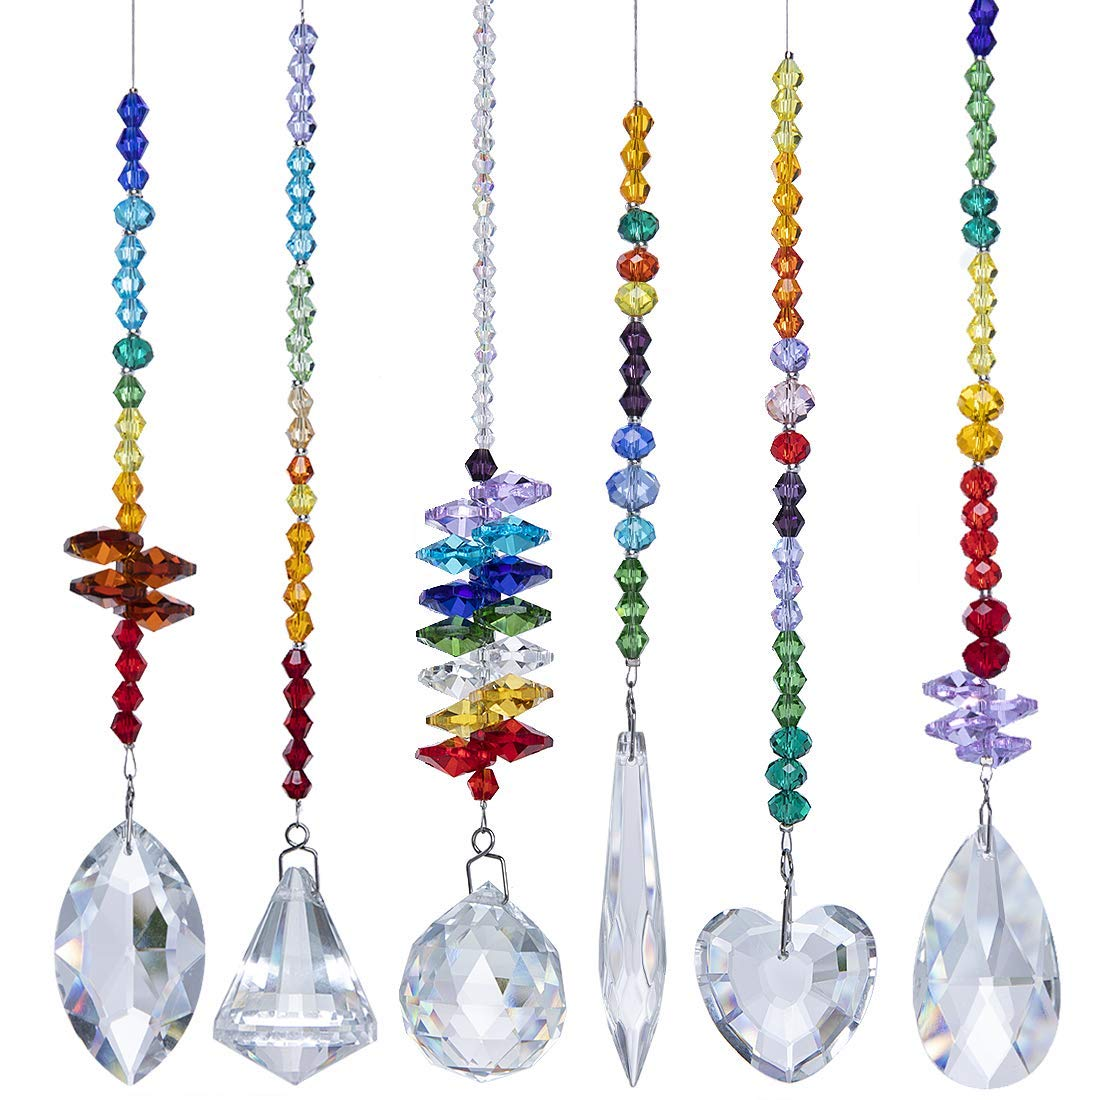 H&D Colorful Crystals Glass Pendants Chandelier Suncatchers Prisms Hanging Ornament Octogon Chakra Crystal Pendants for Home,Office,Garden Decoration,Pack of 6